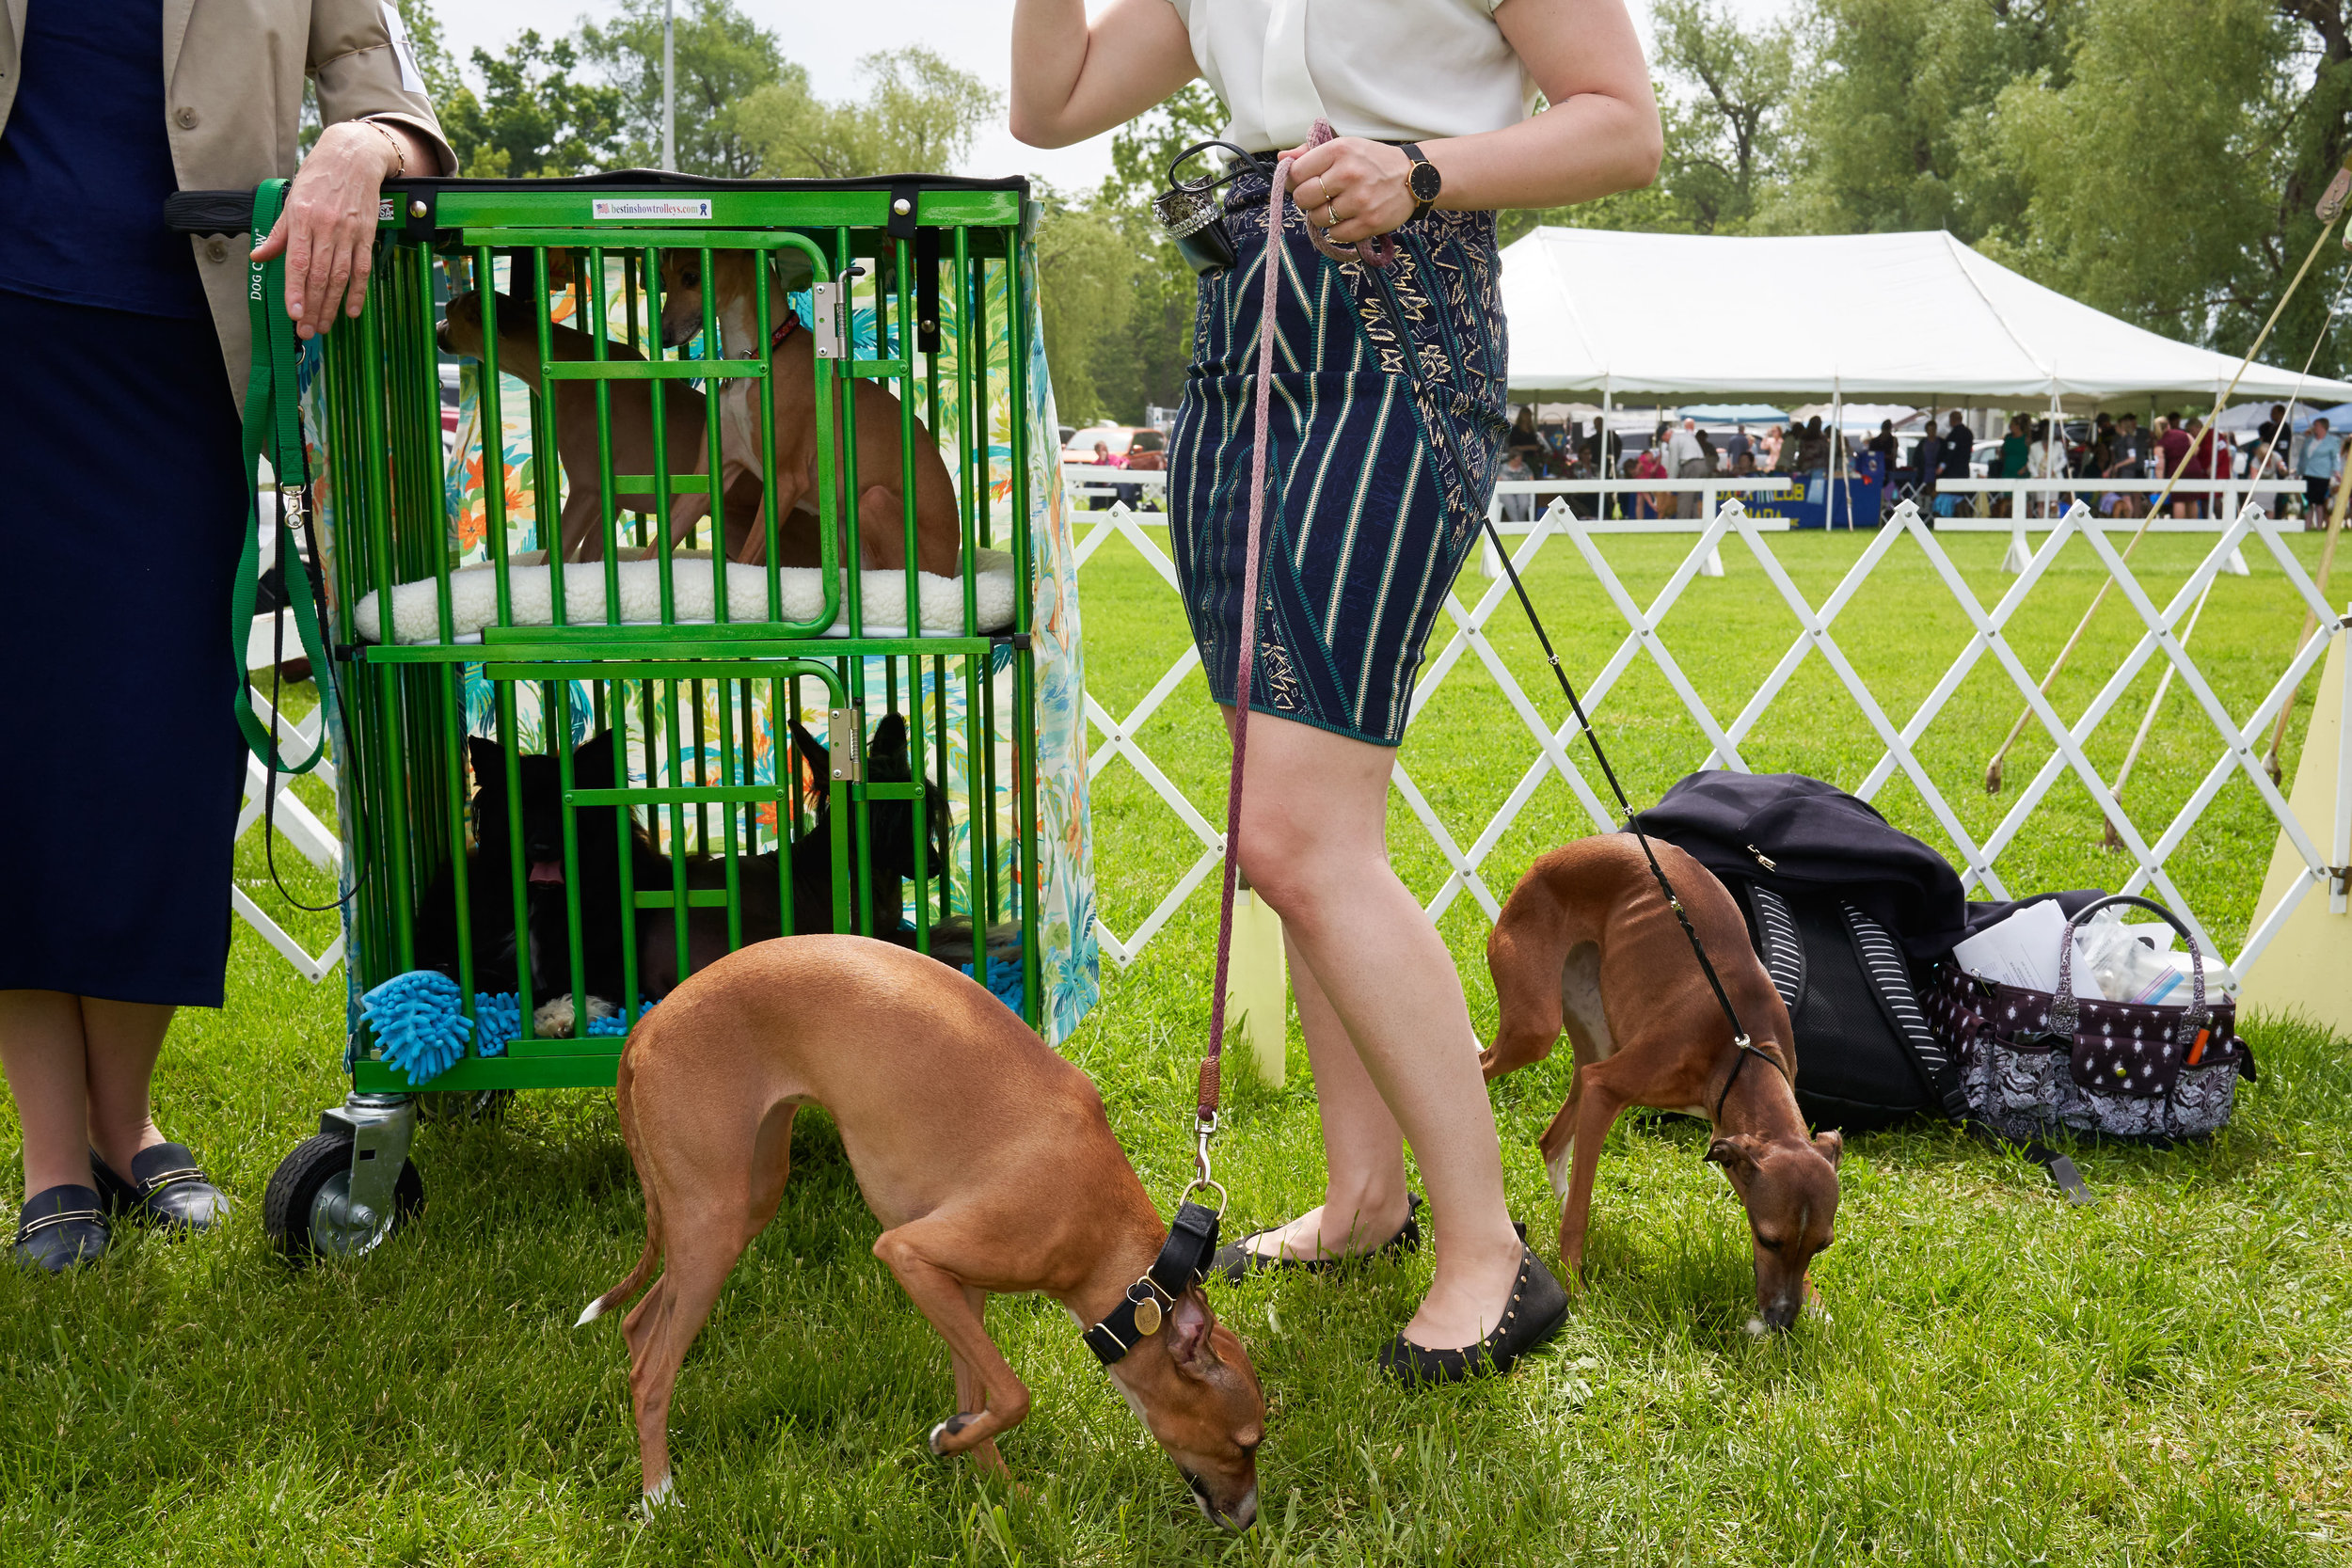 Italian greyhound owners talk before the show